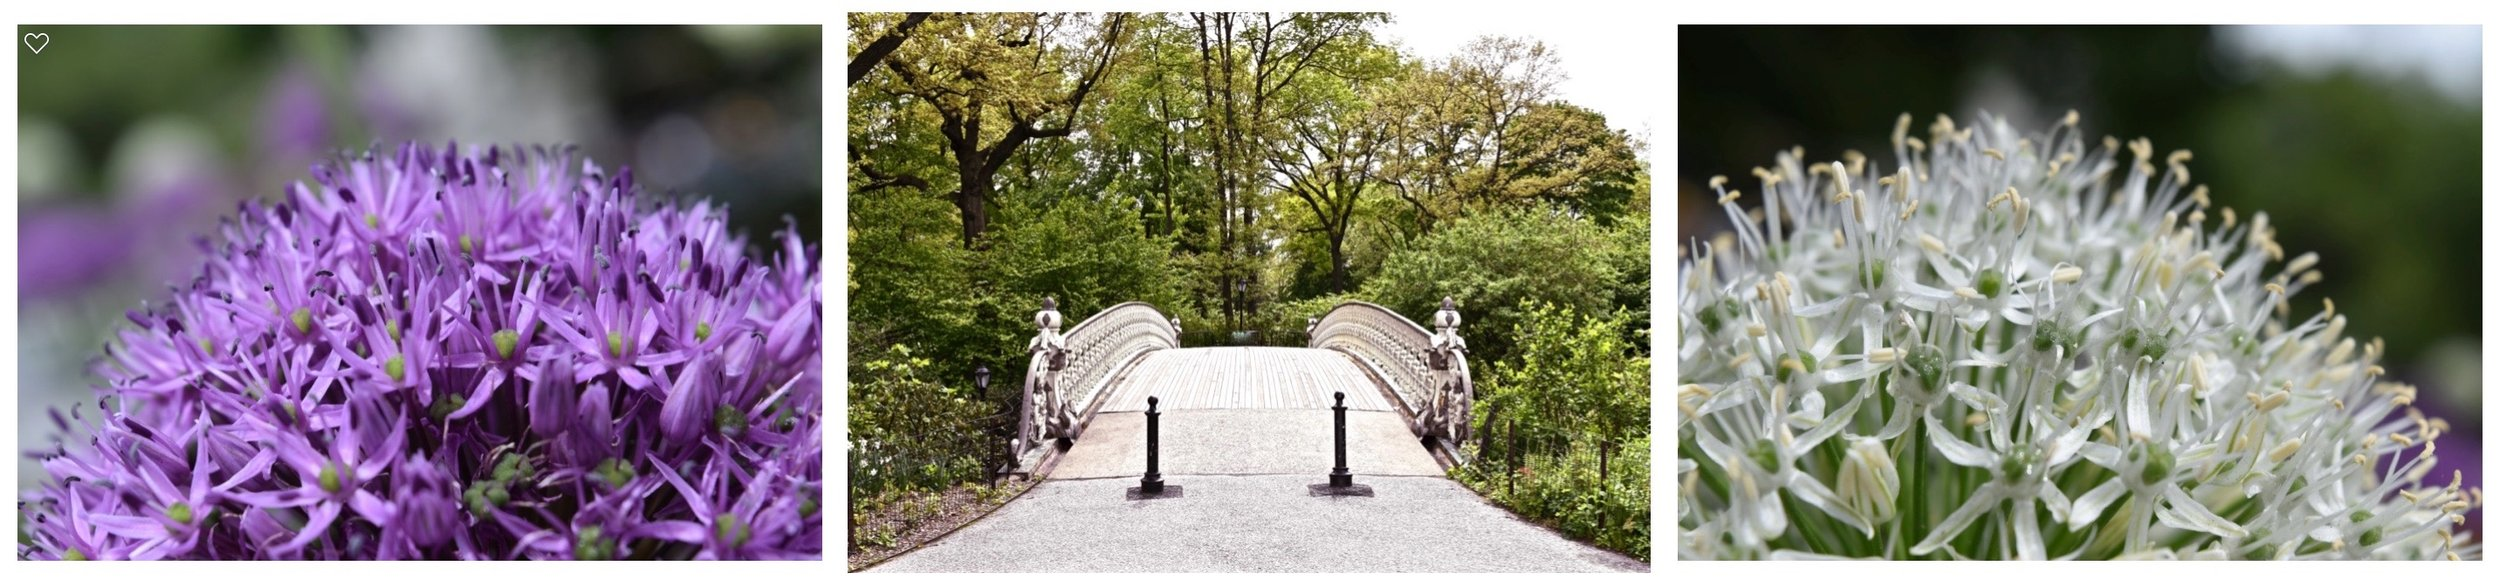 "Central Park Triptych:  ""Floral Entry"""